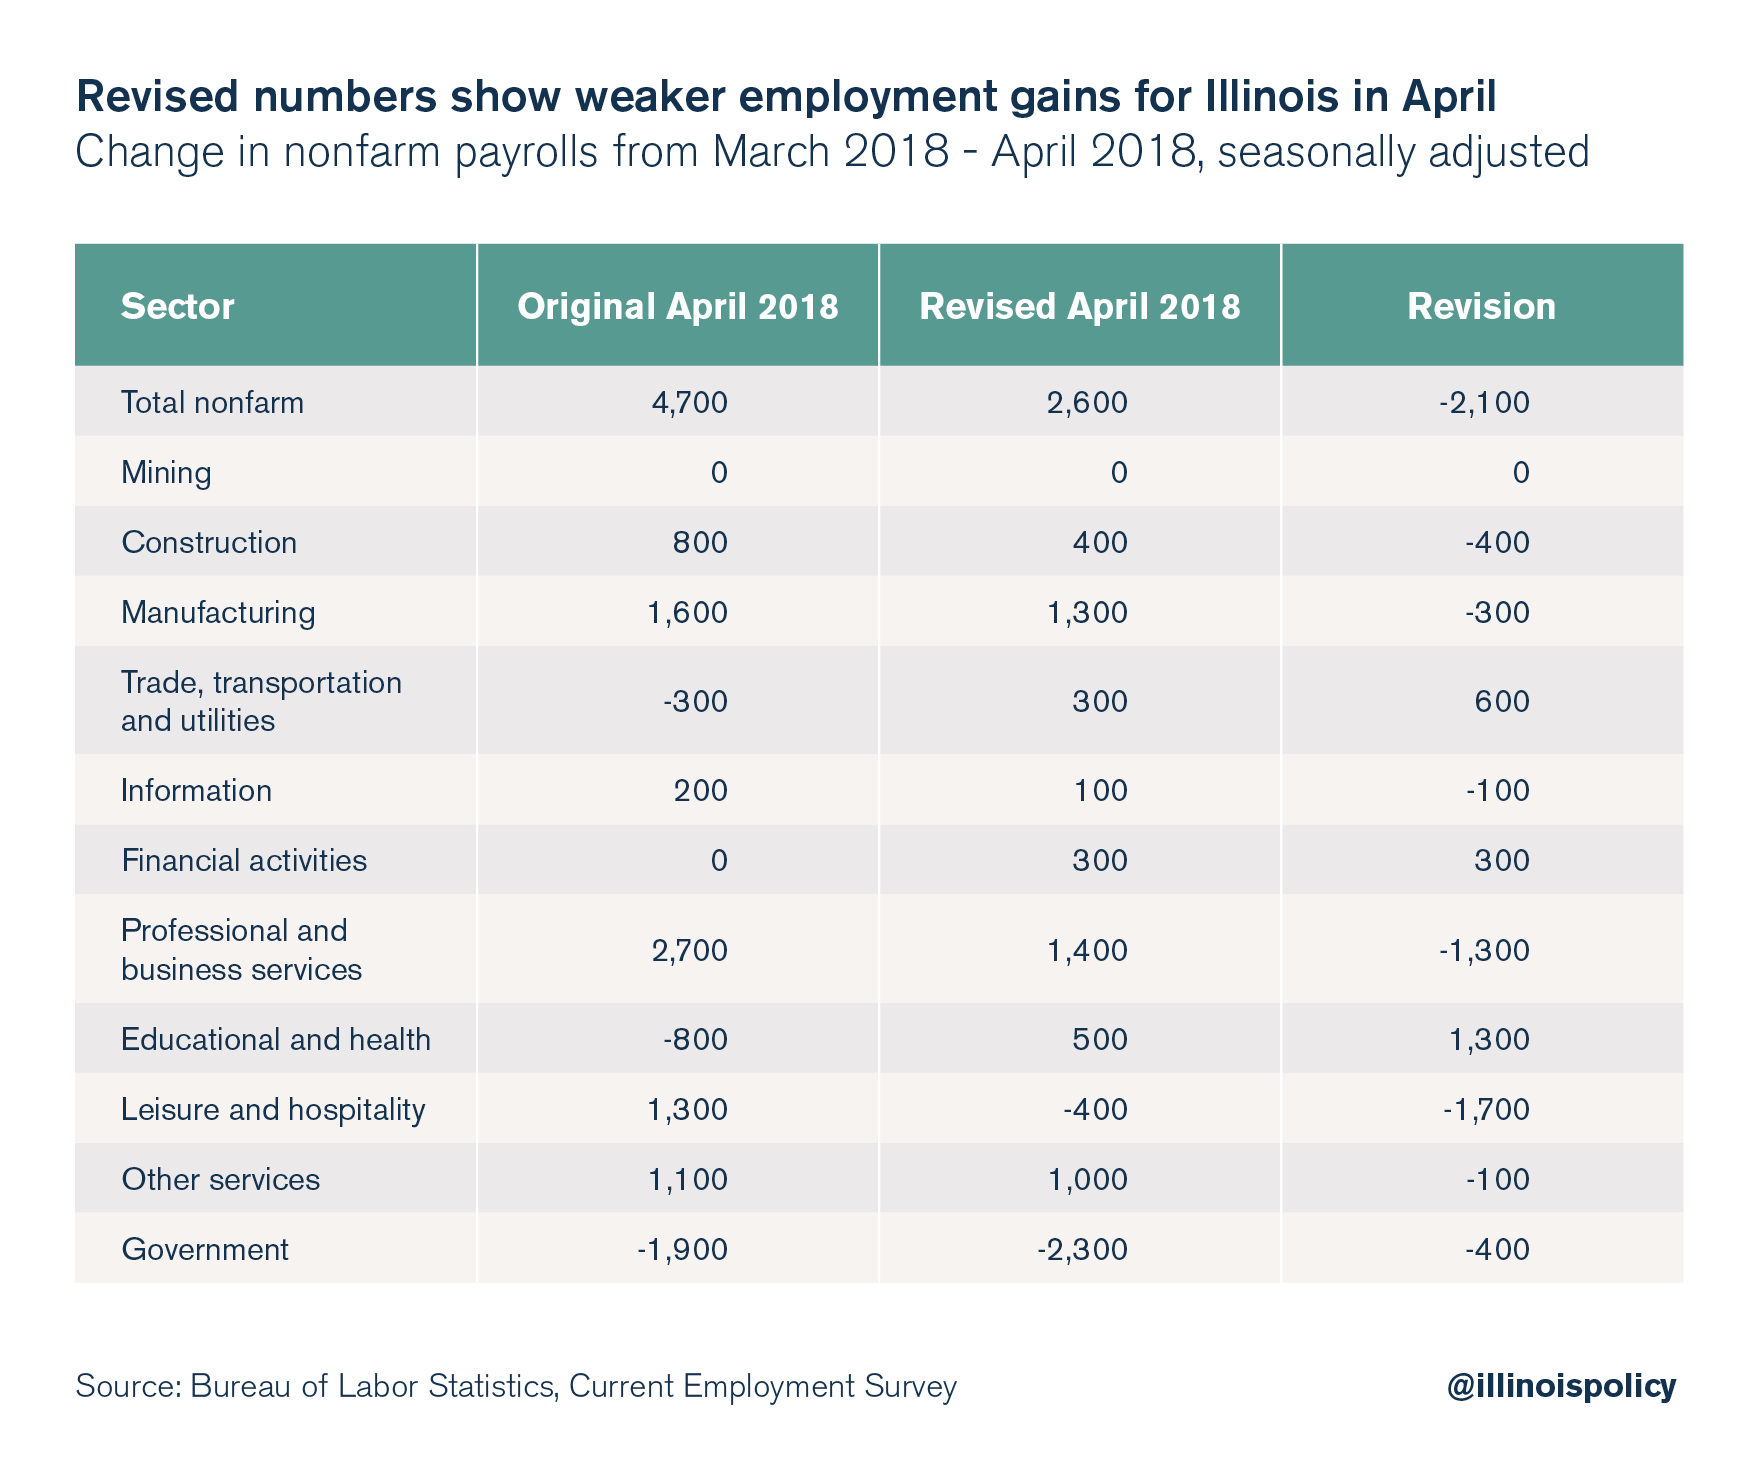 Revised numbers show weaker employment gains for Illinois is April